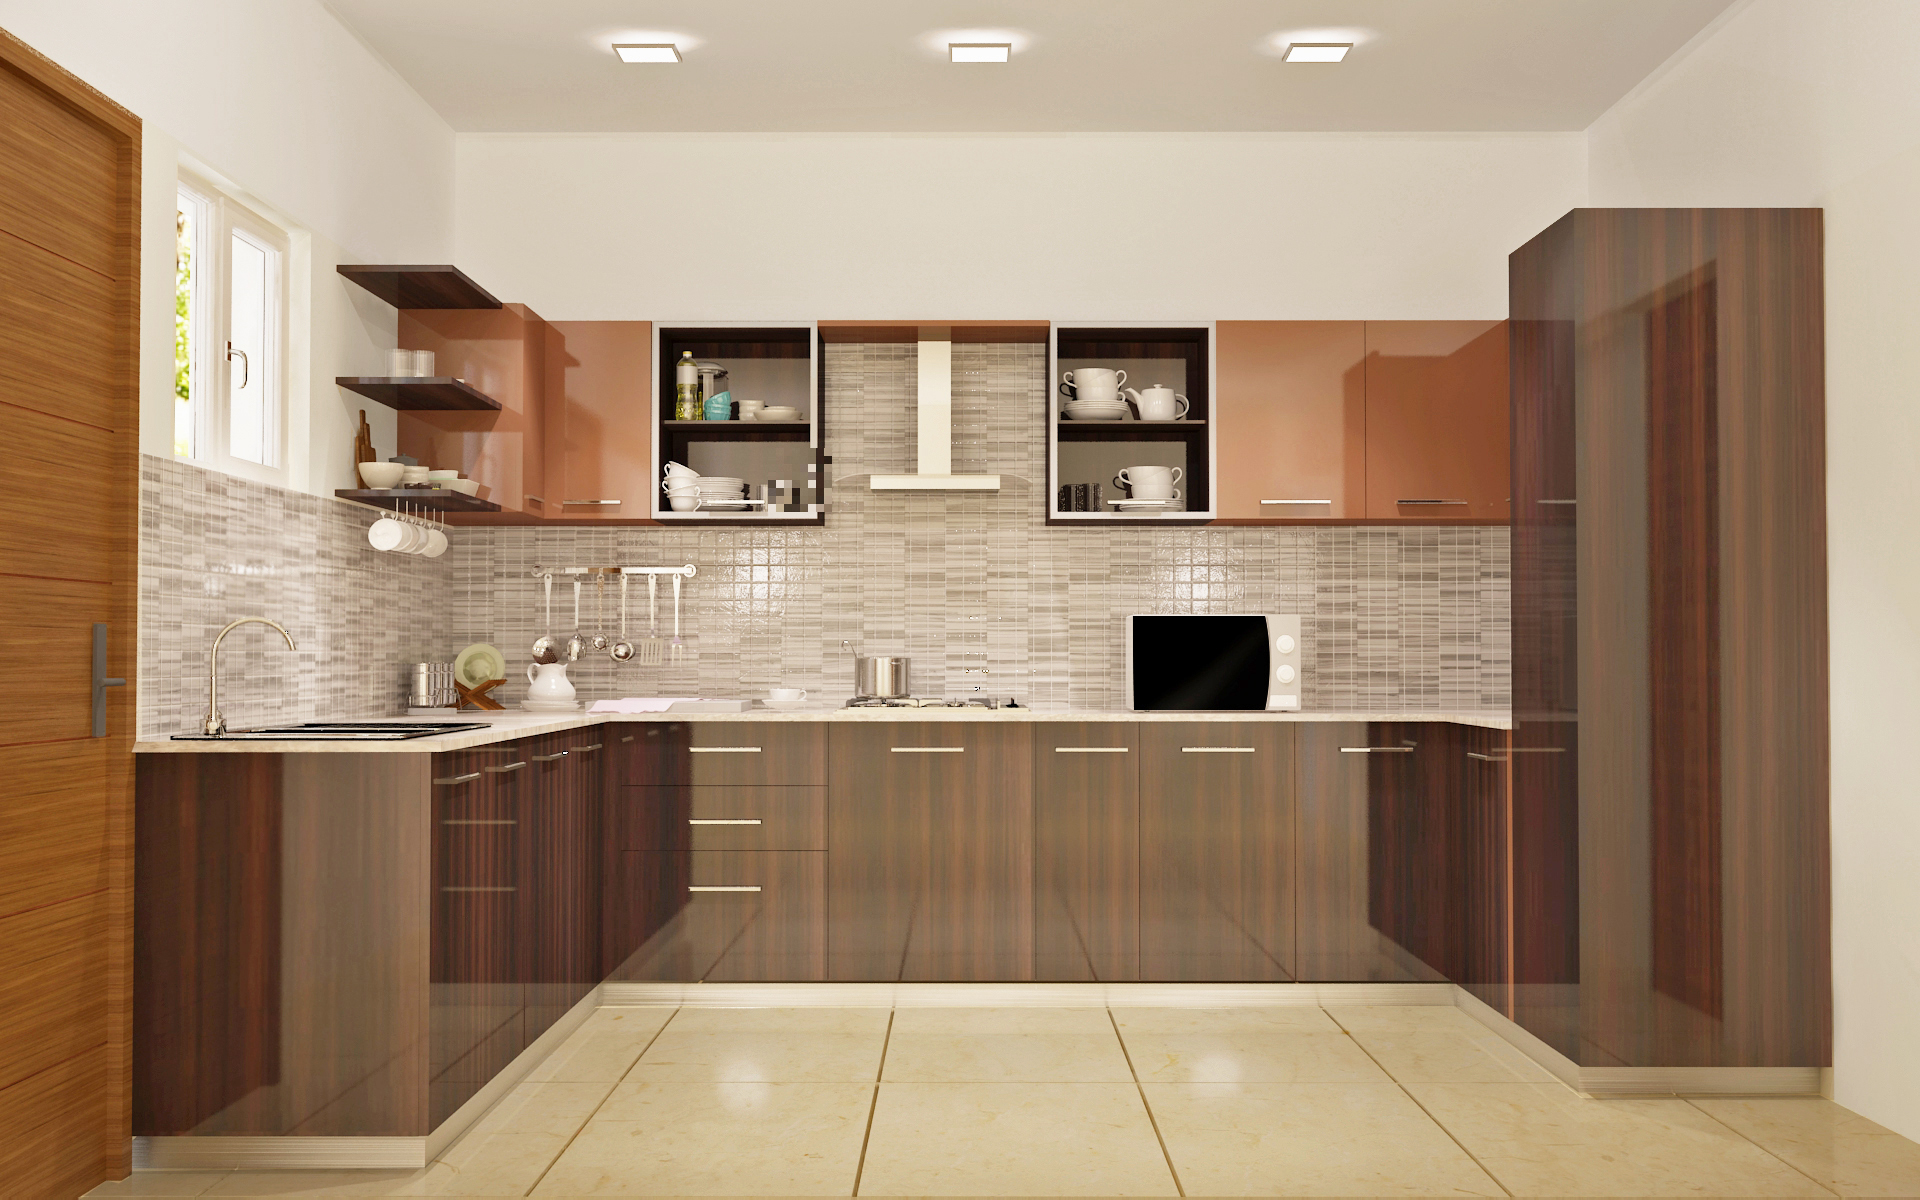 Best Modular Kitchen Designs in Bangalore | Customised ...